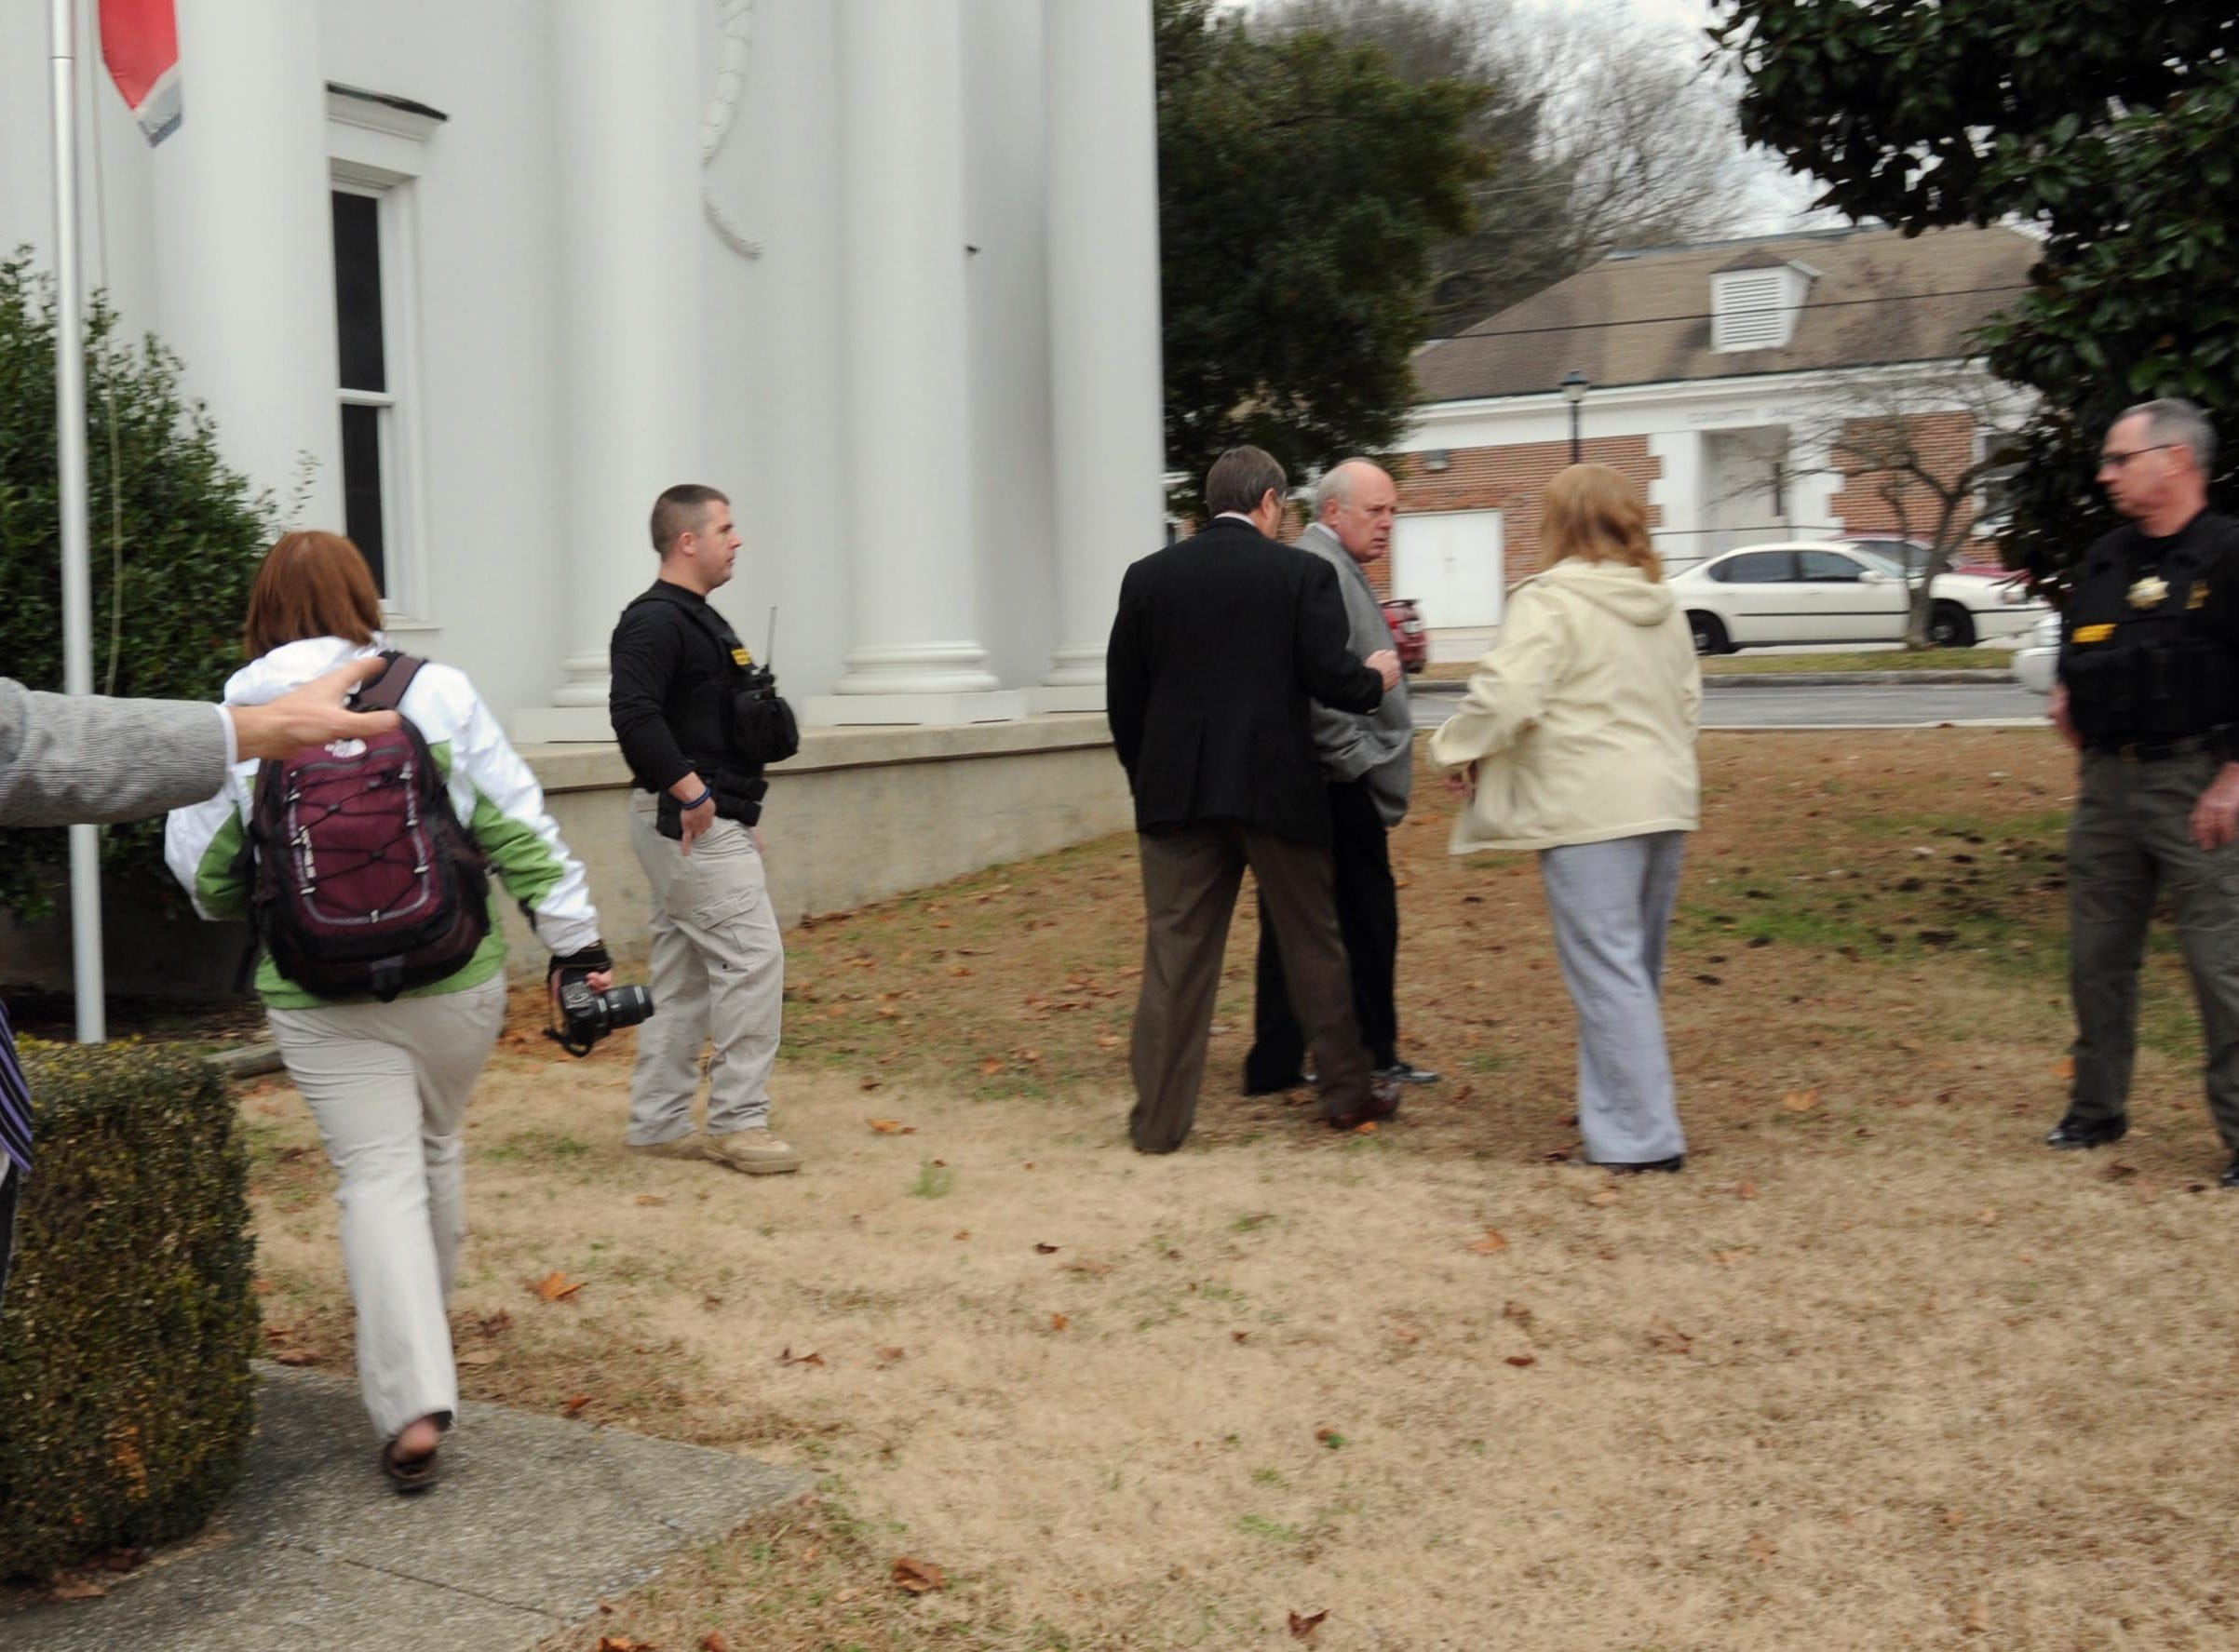 Rocky Houston continued protesting the sale of a portion of the family farm on the front steps of the Roane County Courthouse Tuesday, Jan. 4, 2011 even as Leon's former attorney James Logan was walking away to his car.